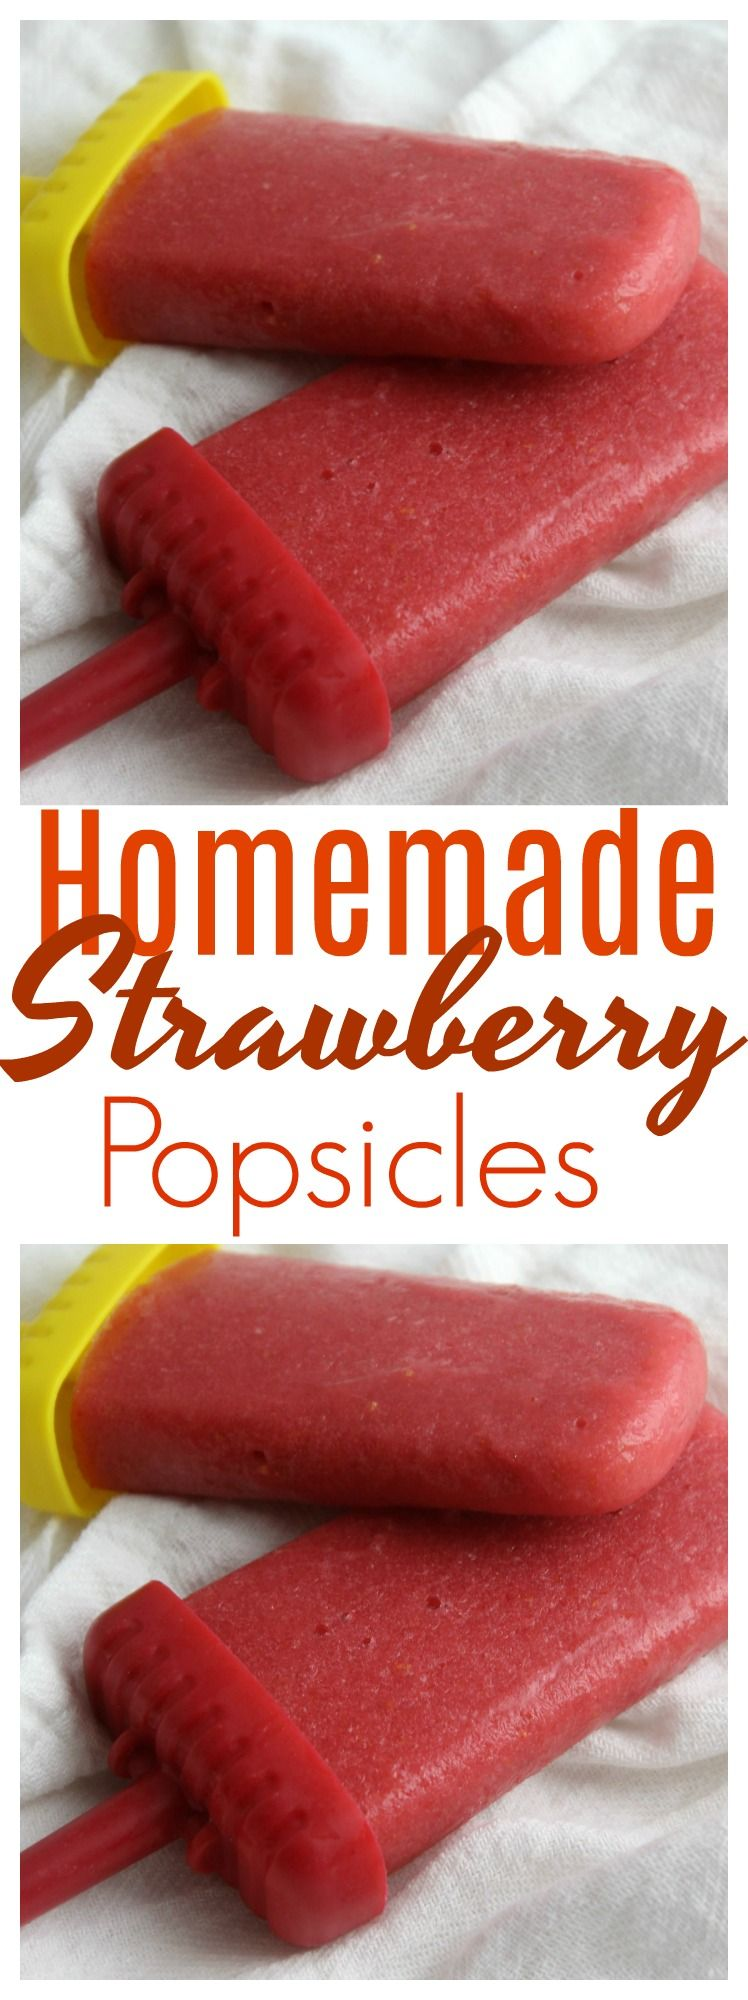 Looking for a healthier alternative to store bought popsicles? These homemade strawberry popsicles are easy and simple and made with fresh strawberries and raw honey. #homemadepopsicleshealthy